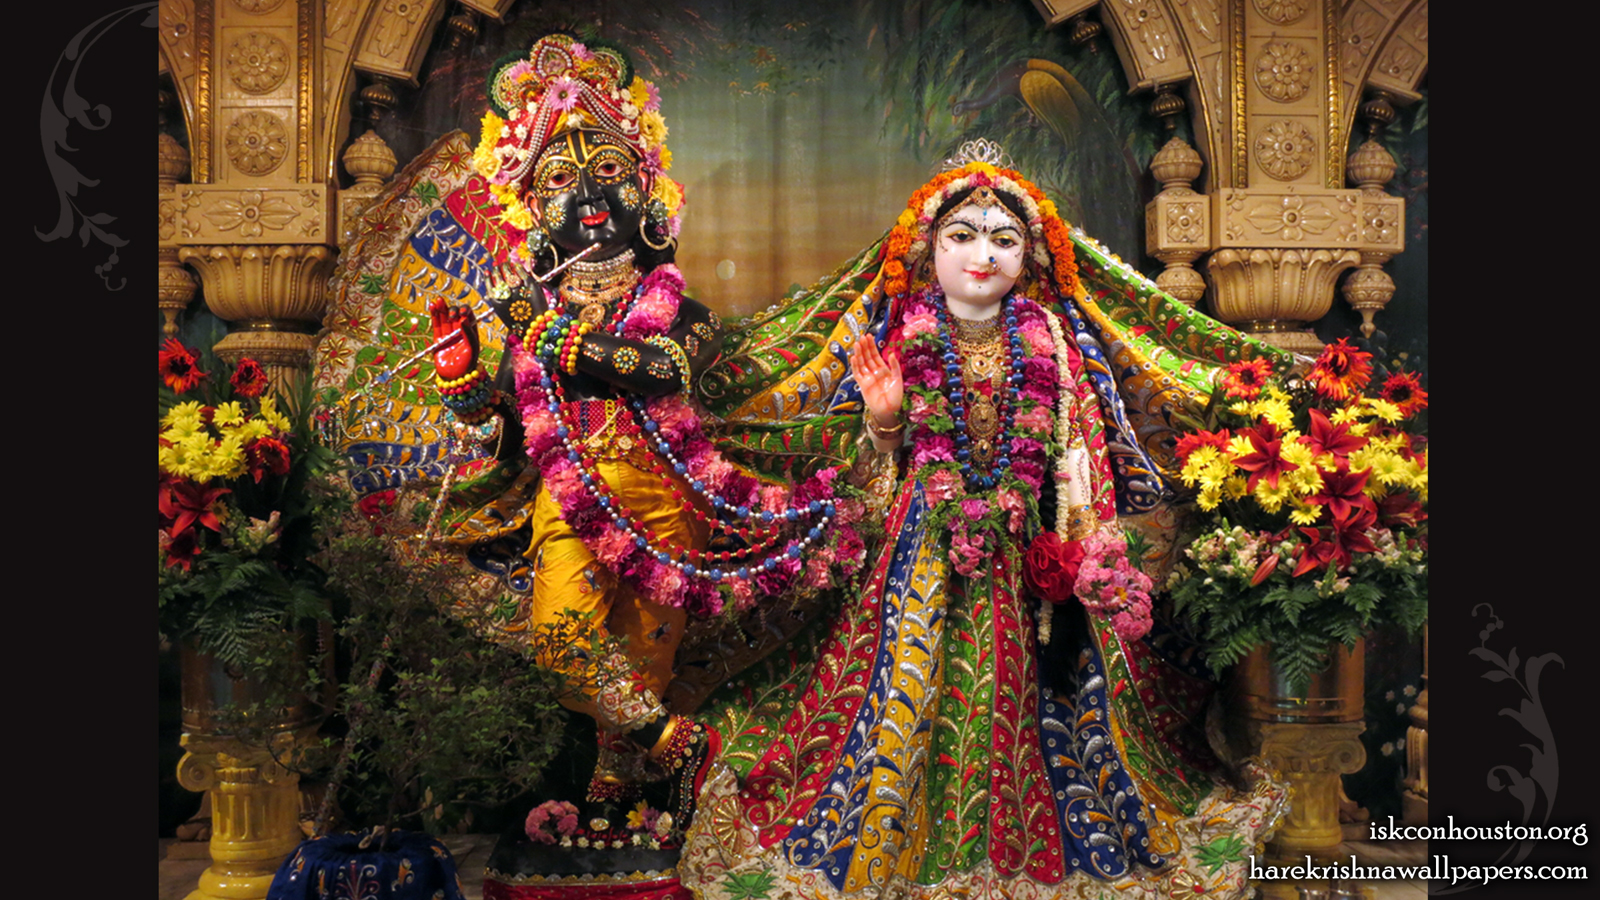 Sri Sri Radha Nilamadhava Wallpaper (010) Size 1600x900 Download